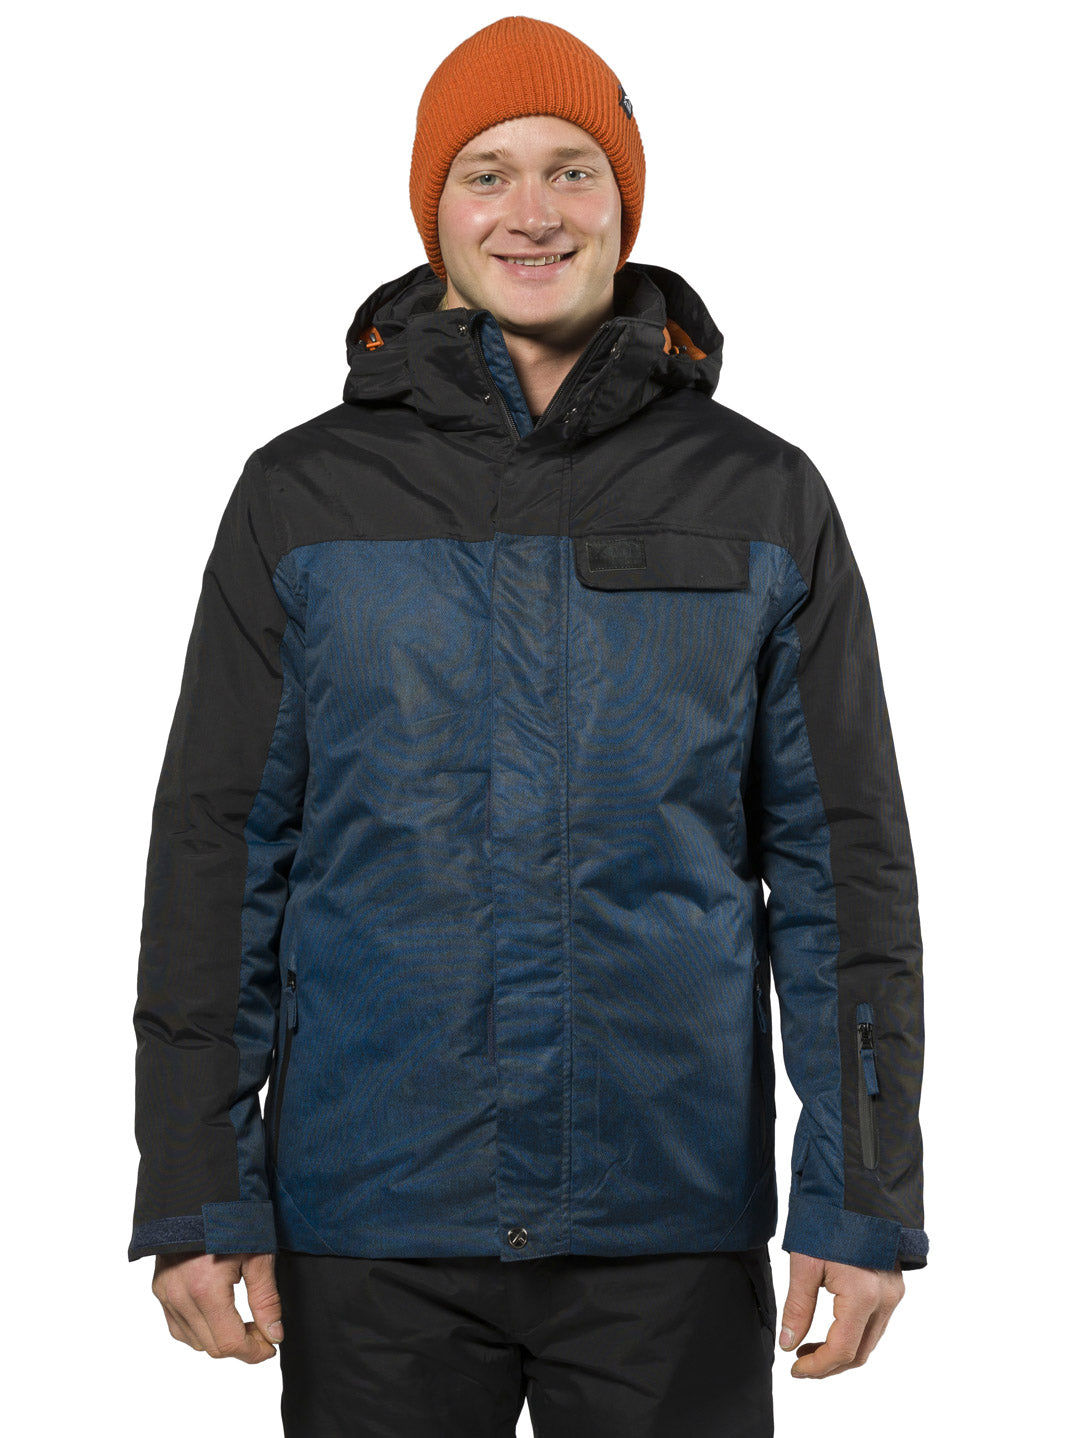 XTM Axel Jacket | Navy Demin- Shop Skis and snow gear online nz - snowscene